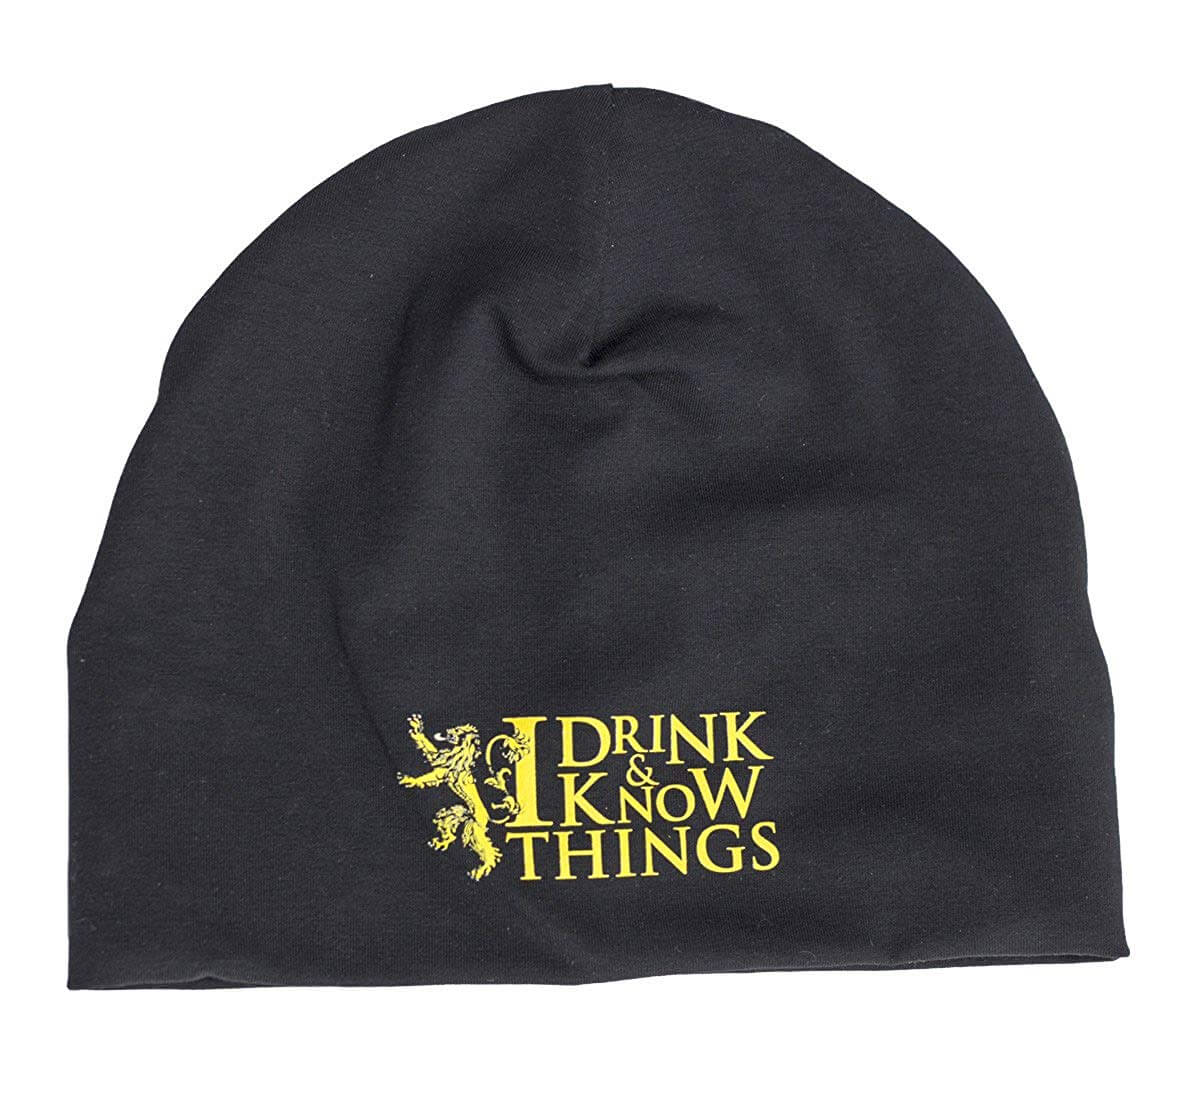 10 Best Game Of Thrones Beanies For GOT Fans   Hand Picked   - Cool ... 284b600b305